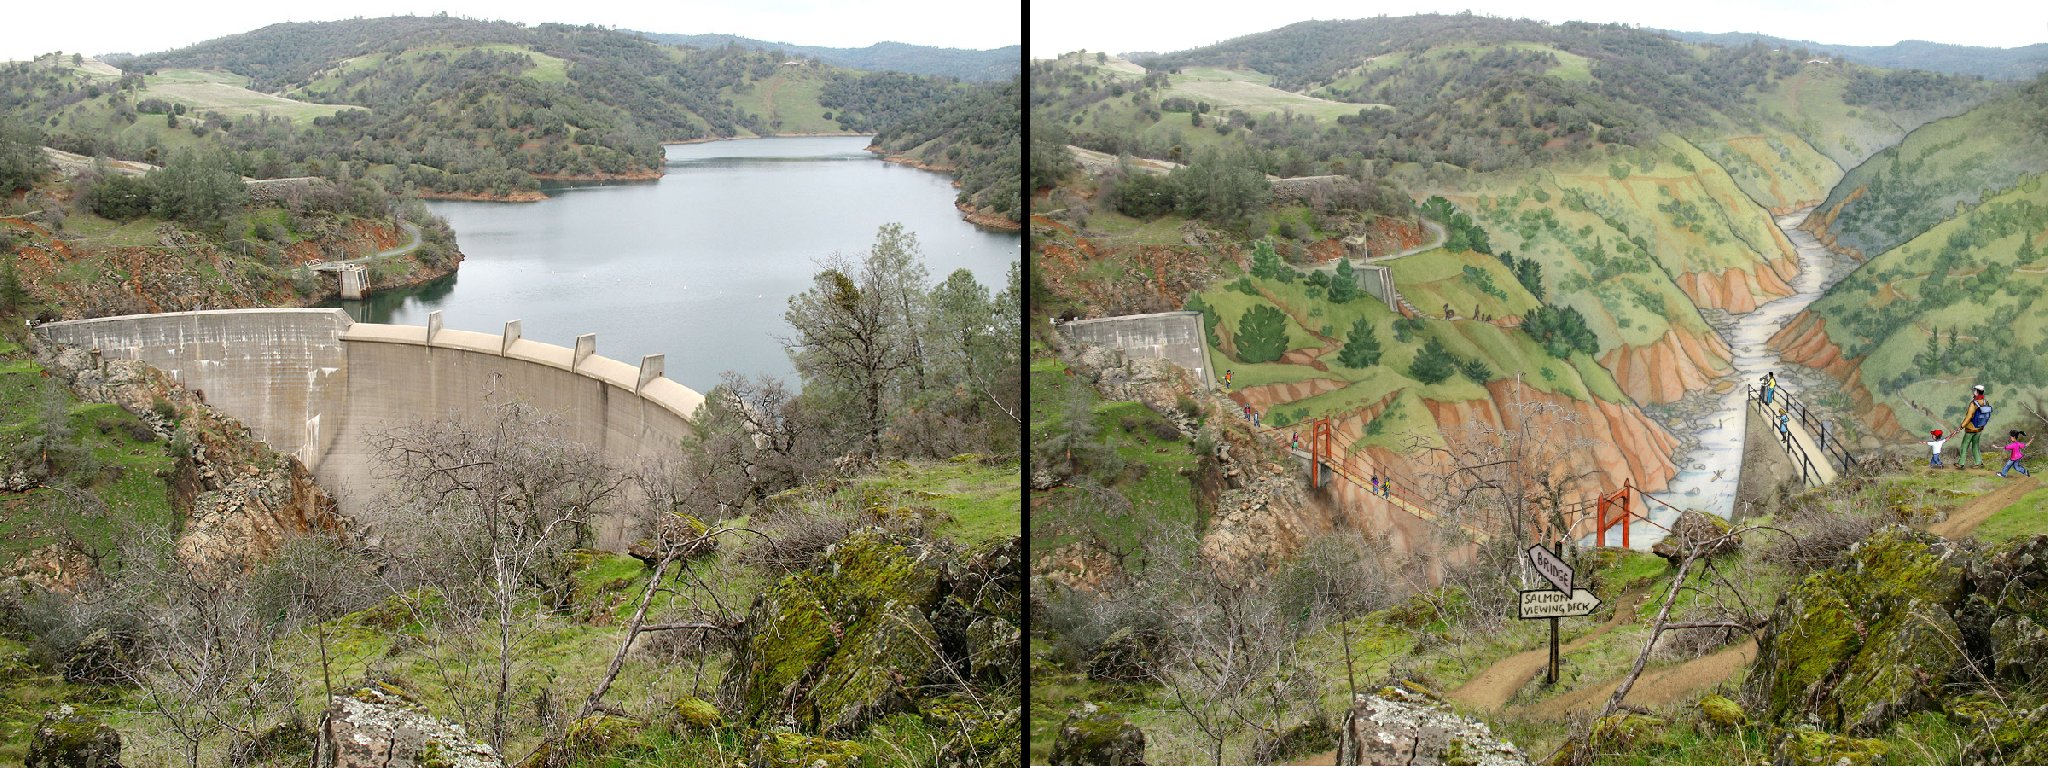 A view of Englebright Dam, on the left, and a drawing what the area could look like without it, by Mona Carron